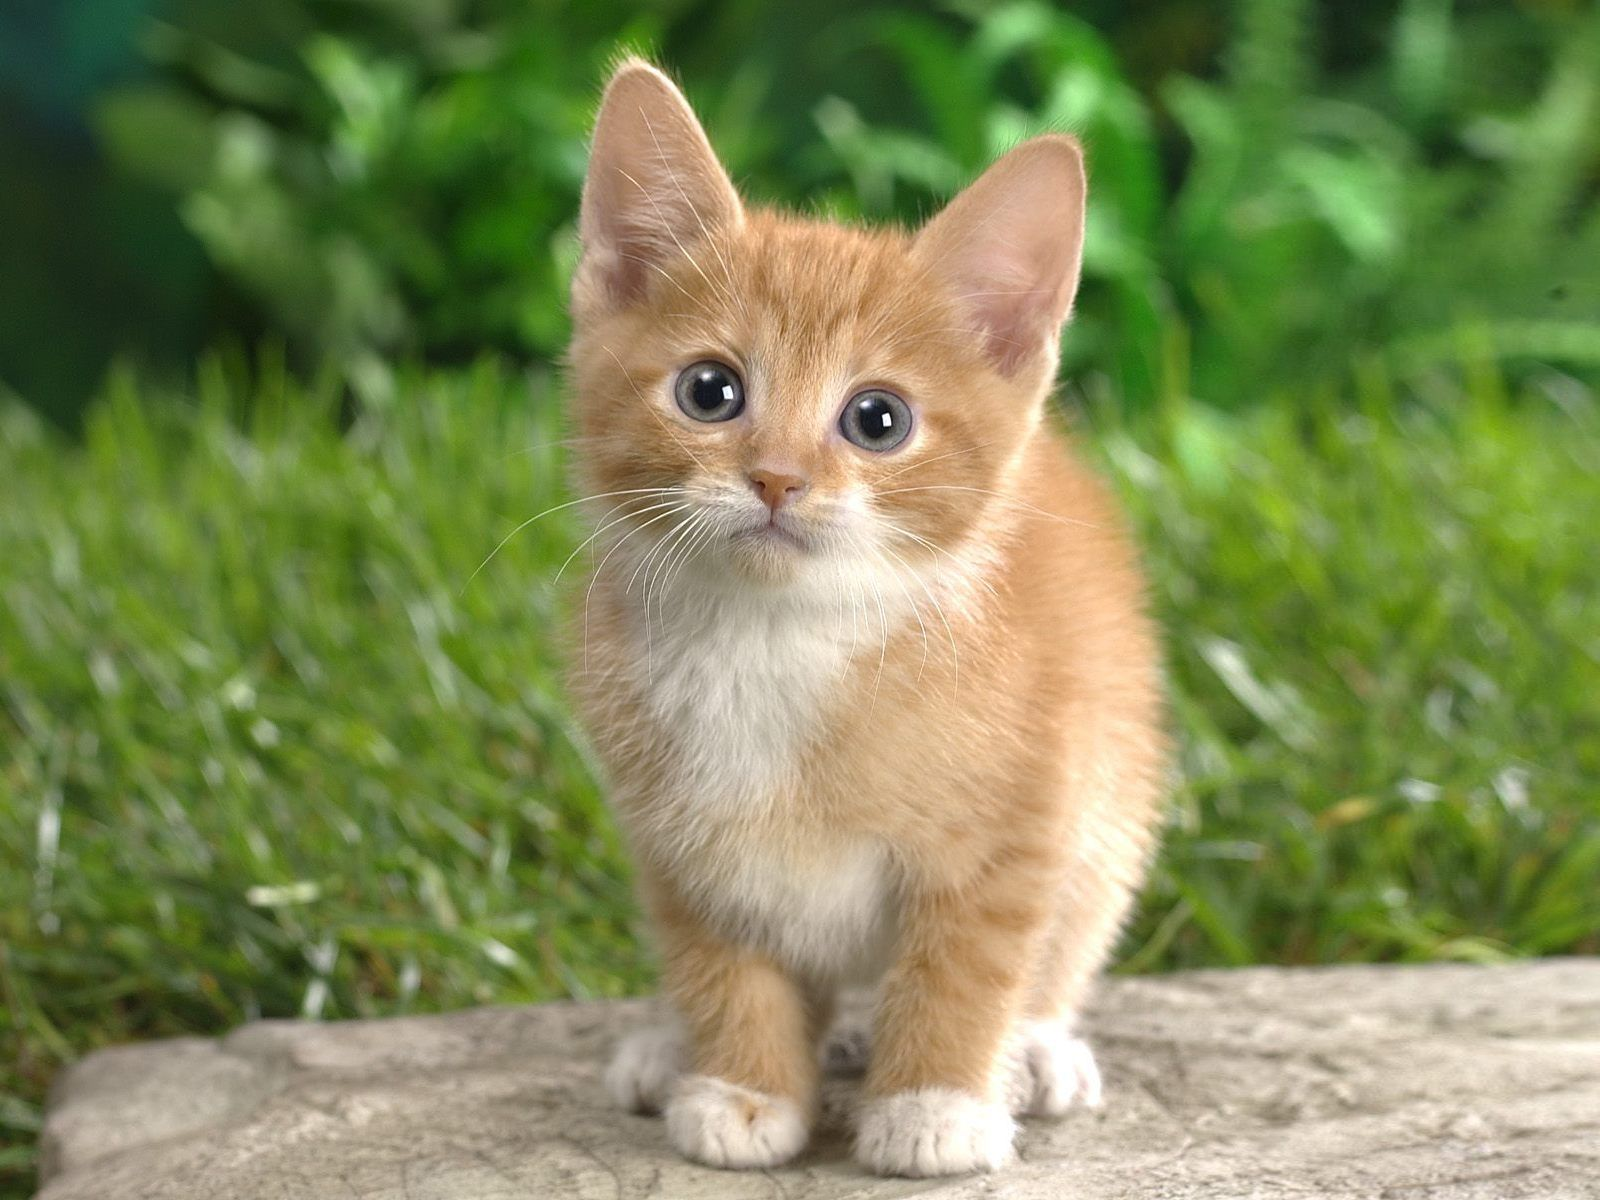 Cats All Wallpapers Beautiful Cats Hd Wallpapers Kittens Cutest Cute Cat Wallpaper Kitten Wallpaper